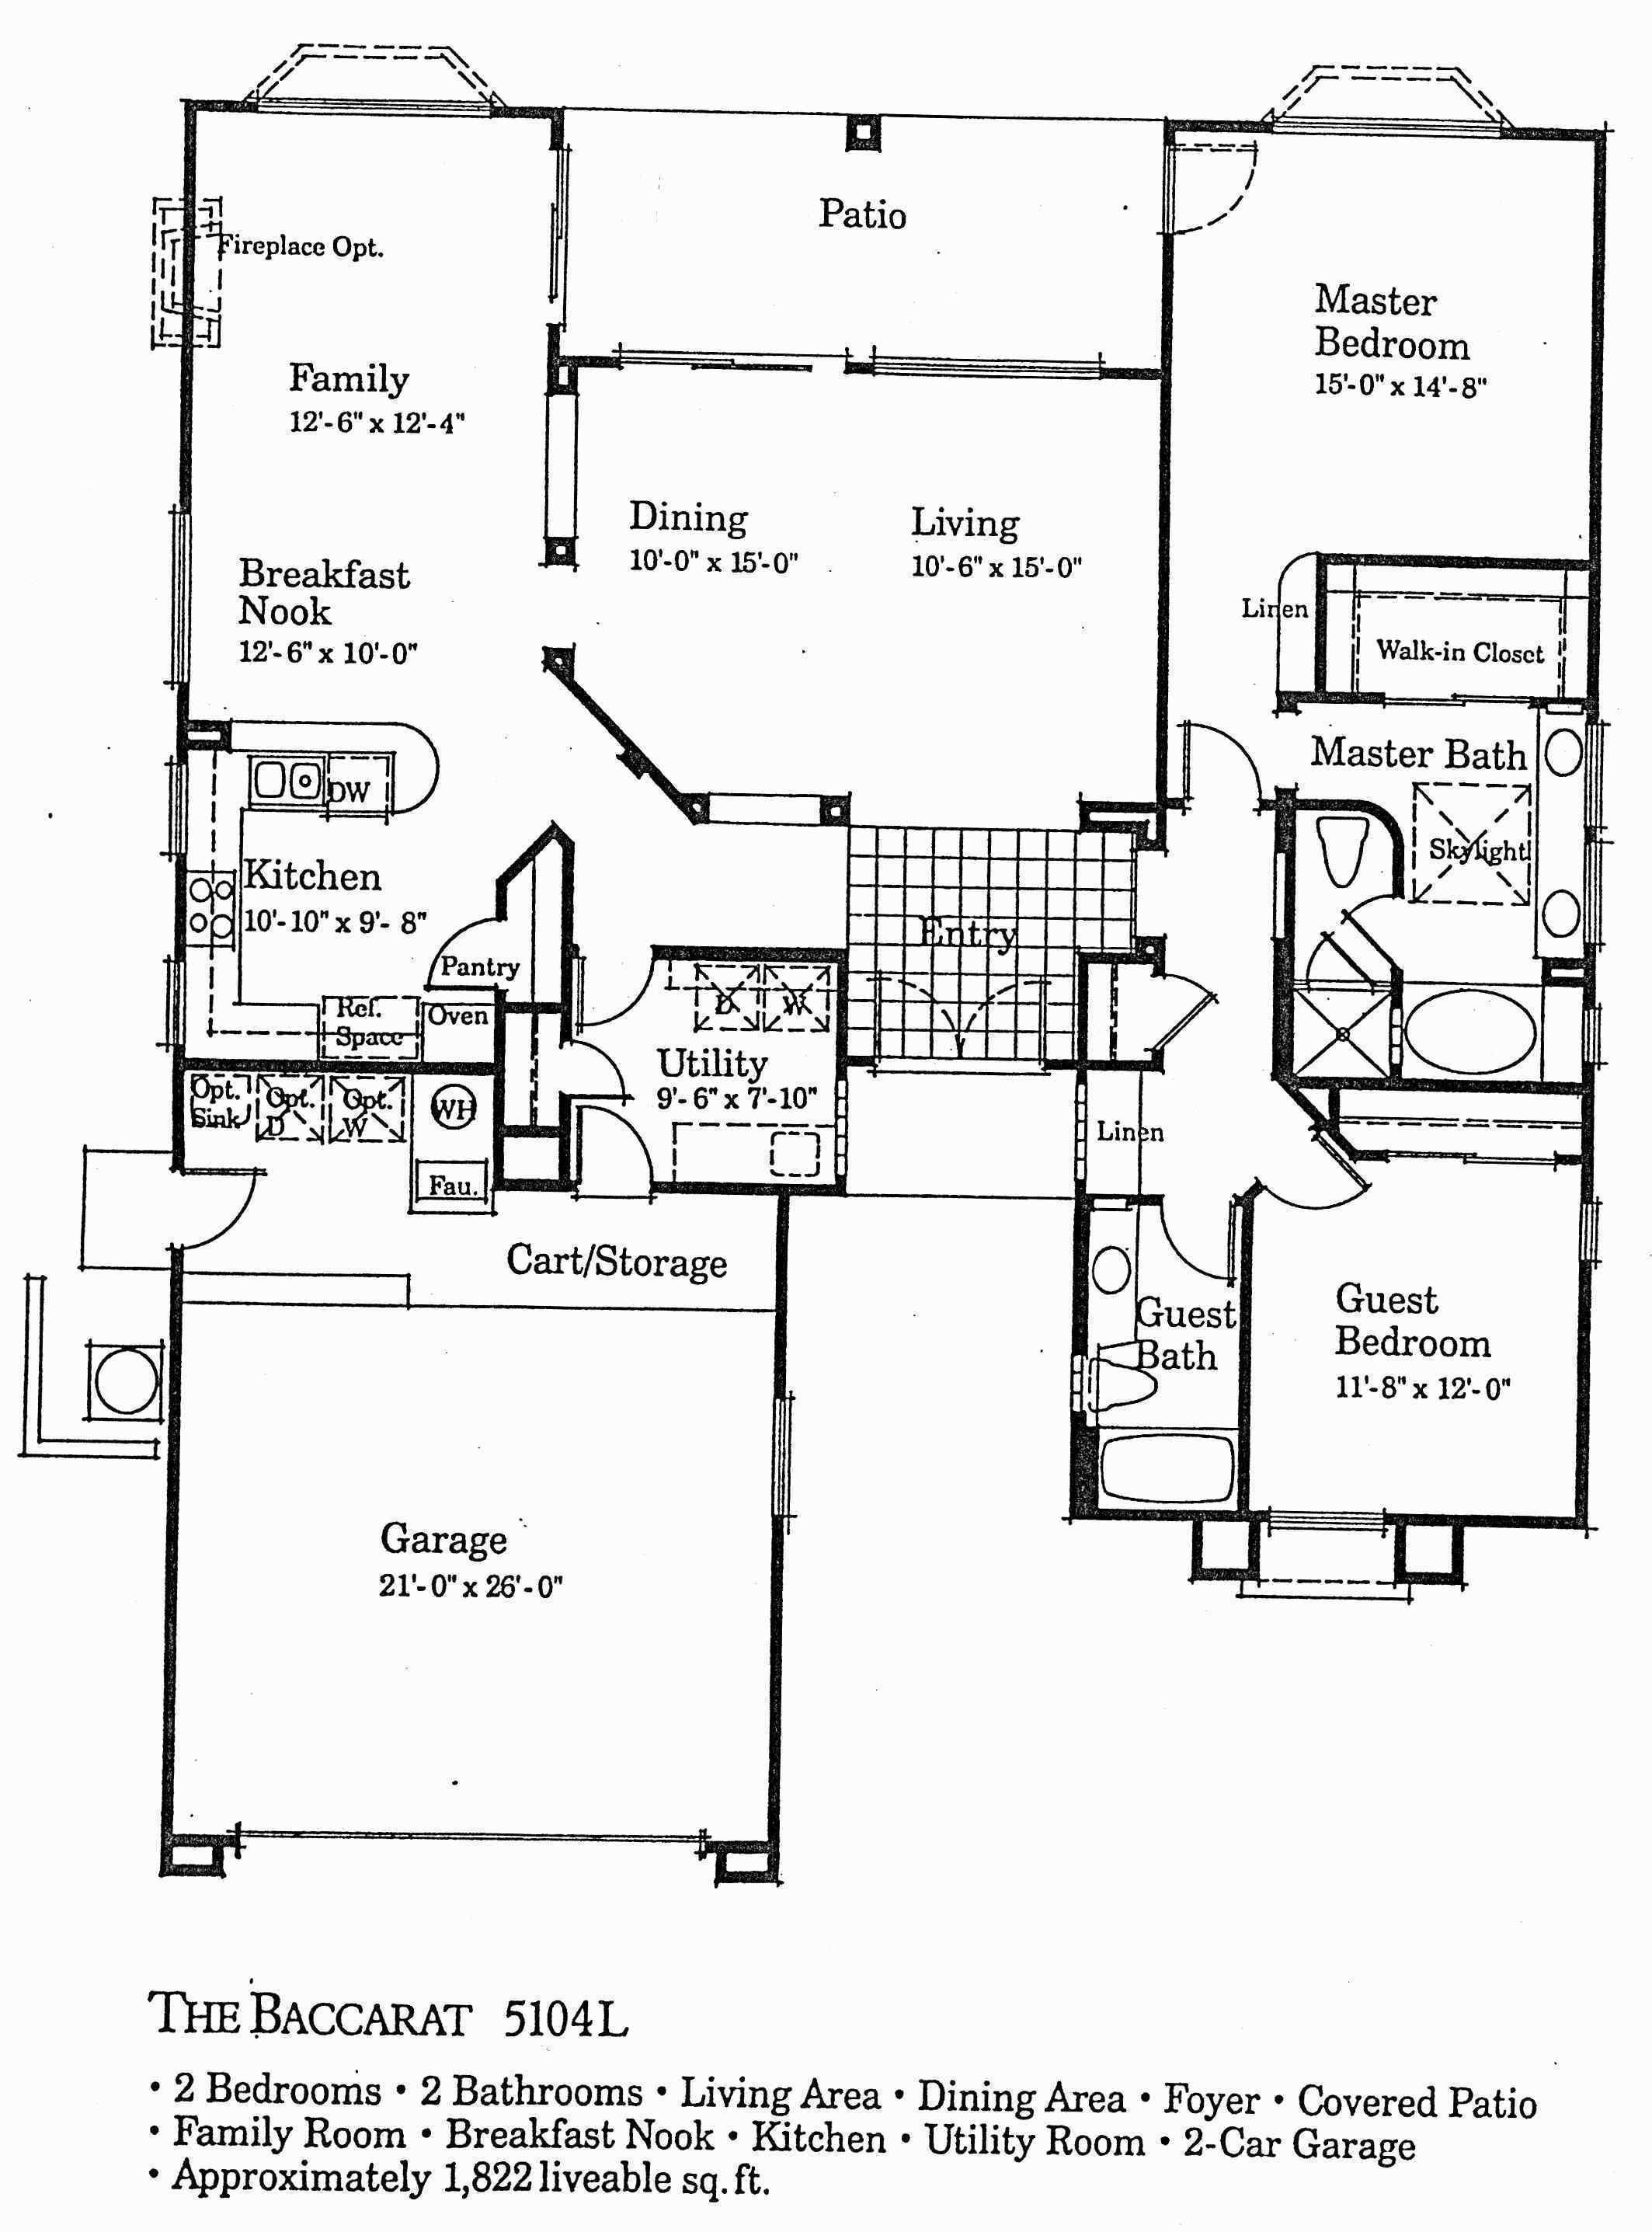 small mother in law apartment designs house plans with inlaw suites and kitchen suite ranch